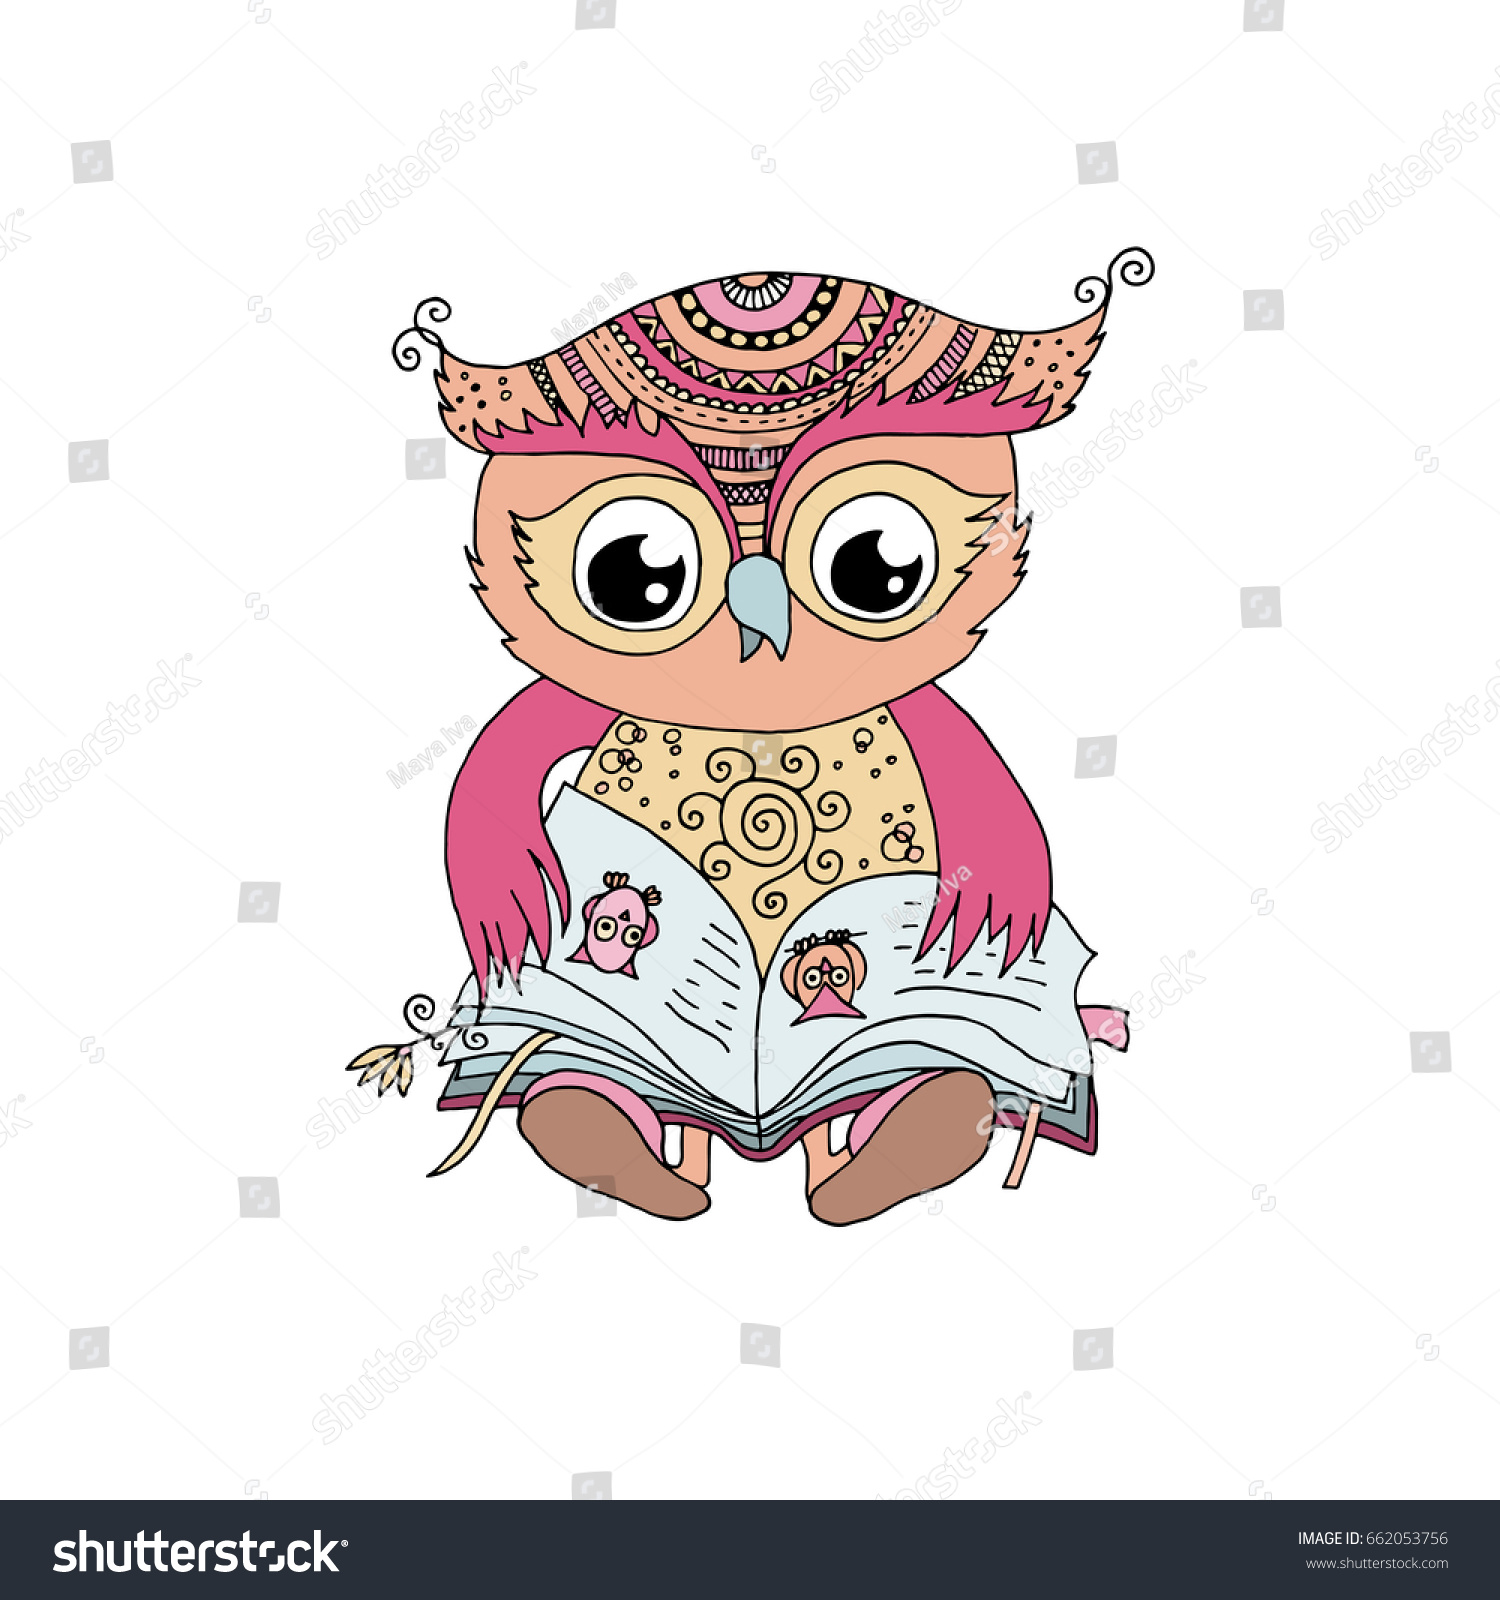 Mom Owl Book Quick Start Guide Of Wiring Diagram Model Evcon Mbc42cq Cute Colorful Sitting Reading Stock Illustration 662053756 Rh Shutterstock Com